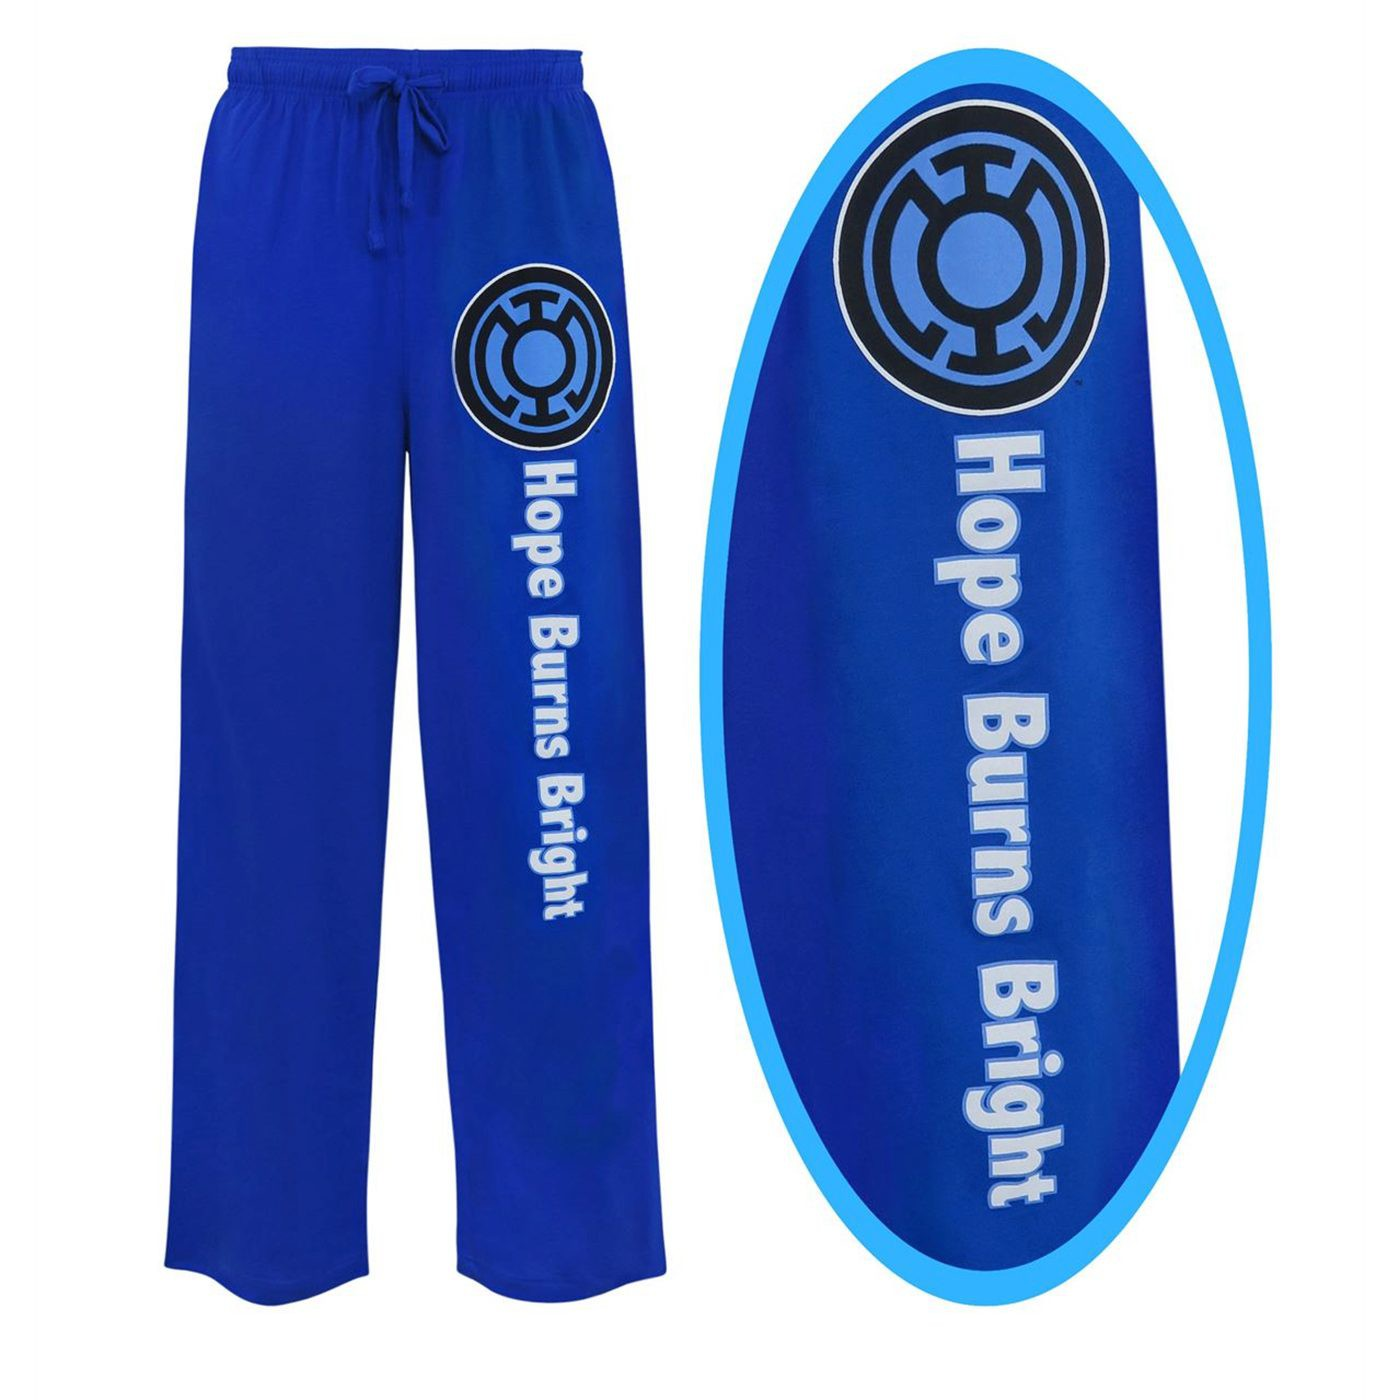 Blue Lantern Hope Burns Bright Unisex Pajama Pants